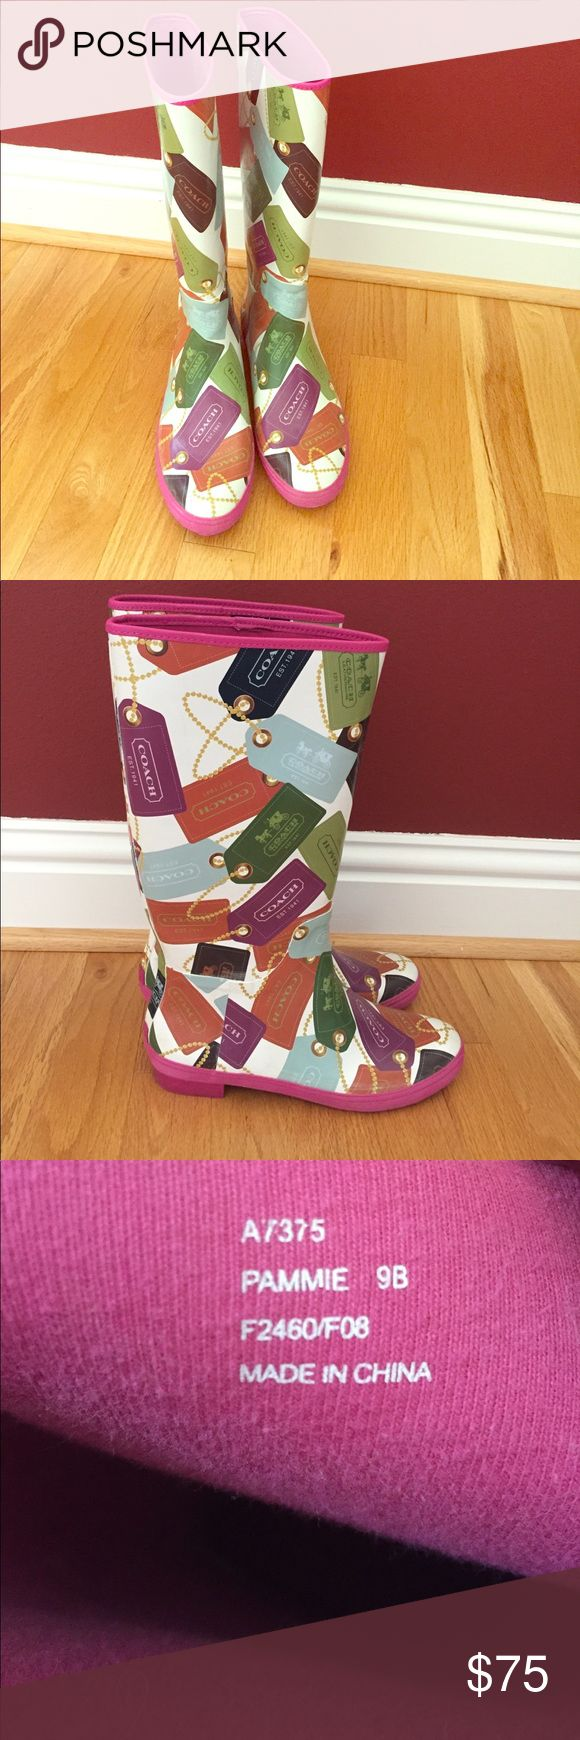 Coach Rain Boots These size 9 Coach rain boots will have you wanting to splish and splash in puddles when it rains outside! Coach Shoes Winter & Rain Boots